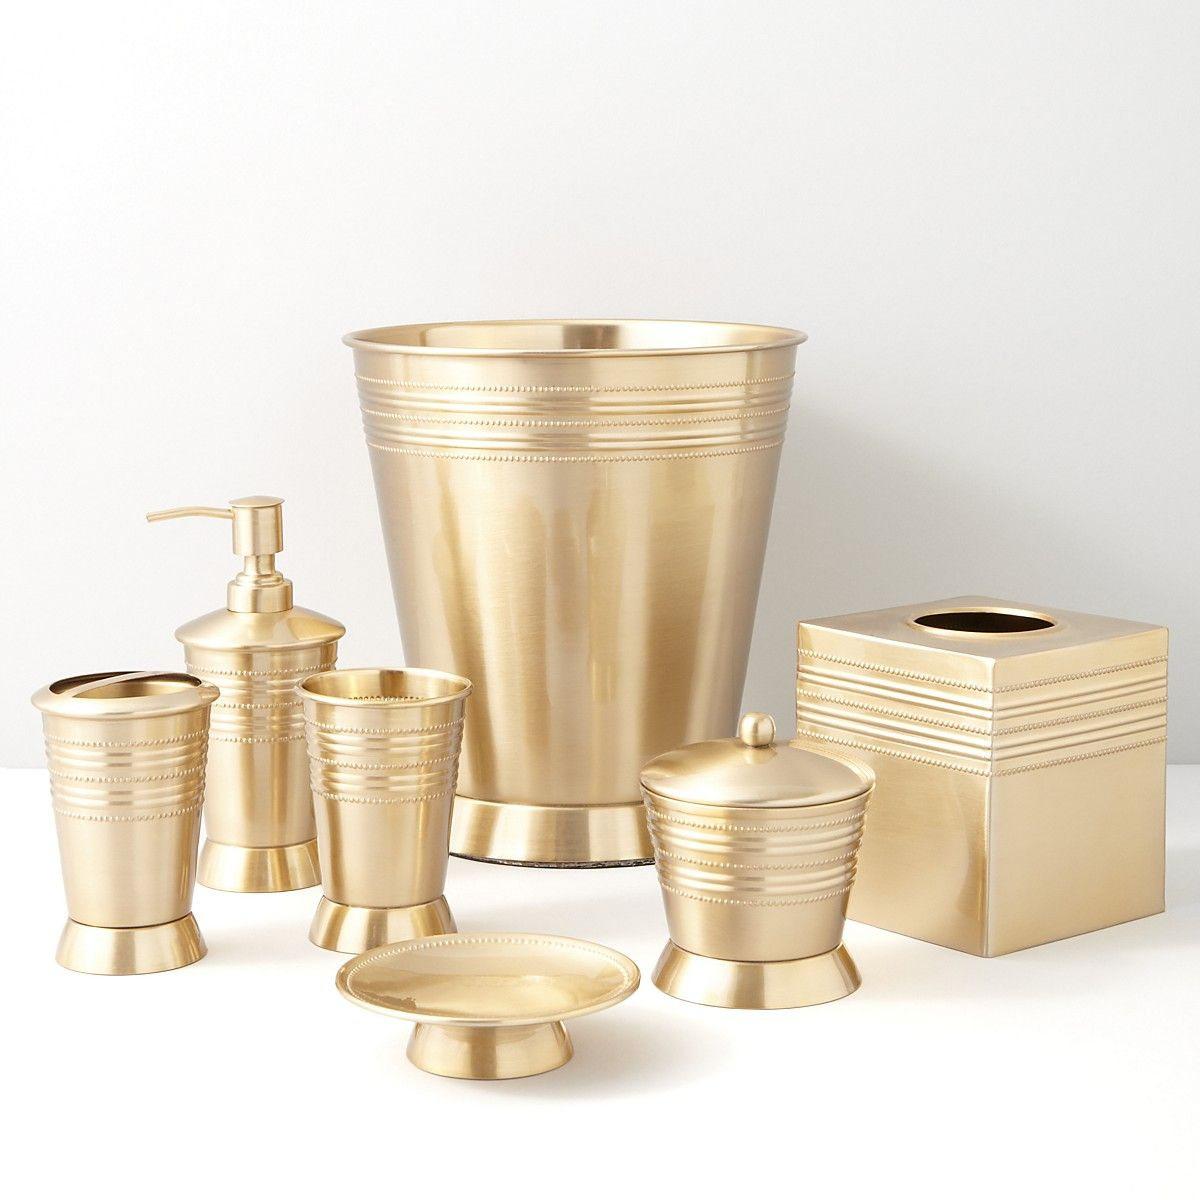 New metallic bead satin brass by paradigm trends bath for New bathroom accessories